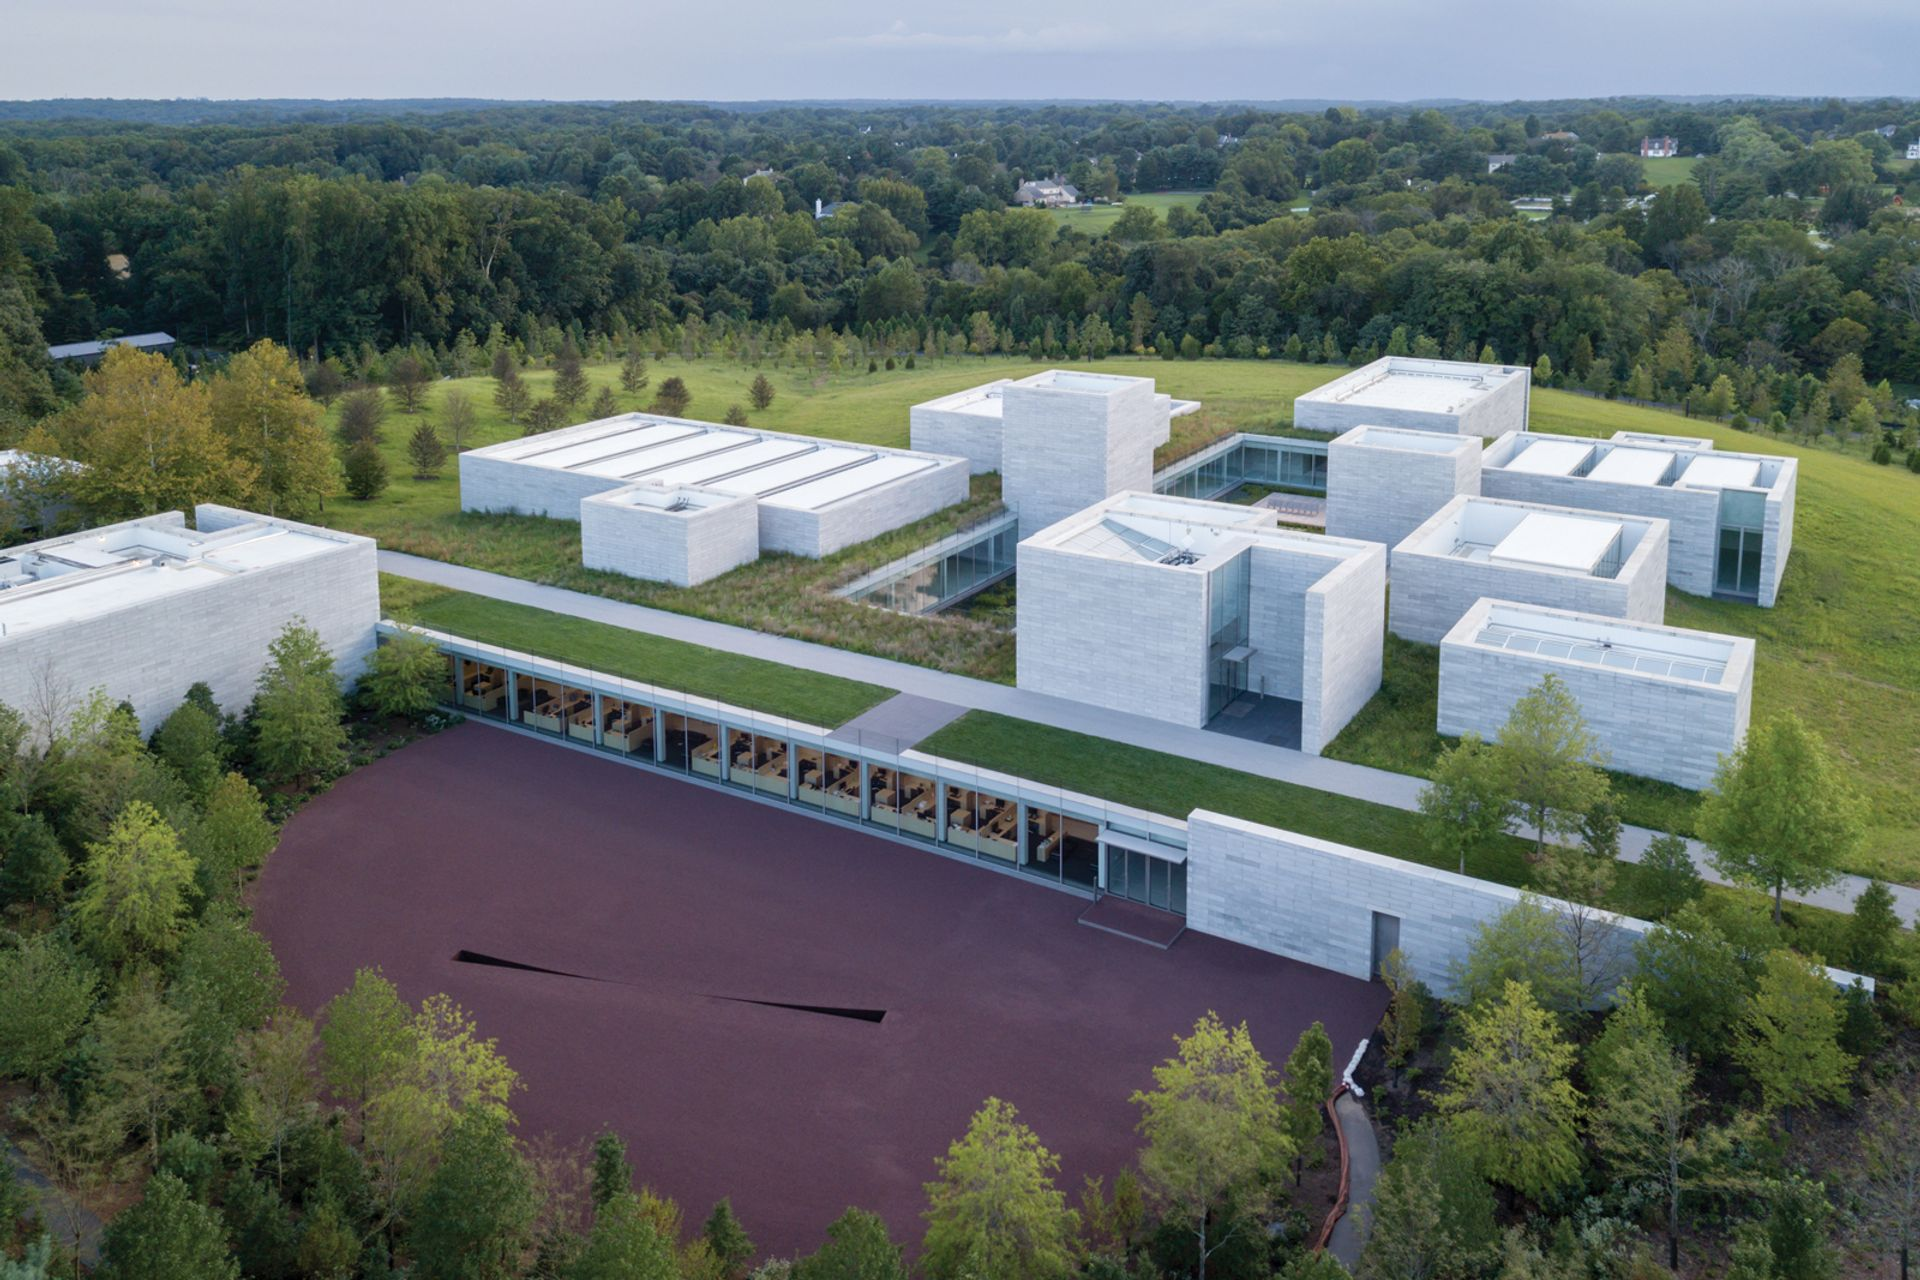 The new Pavilions building at Glenstone Photo: Iwan Baan; © Michael Heizer; courtesy of Glenstone Museum